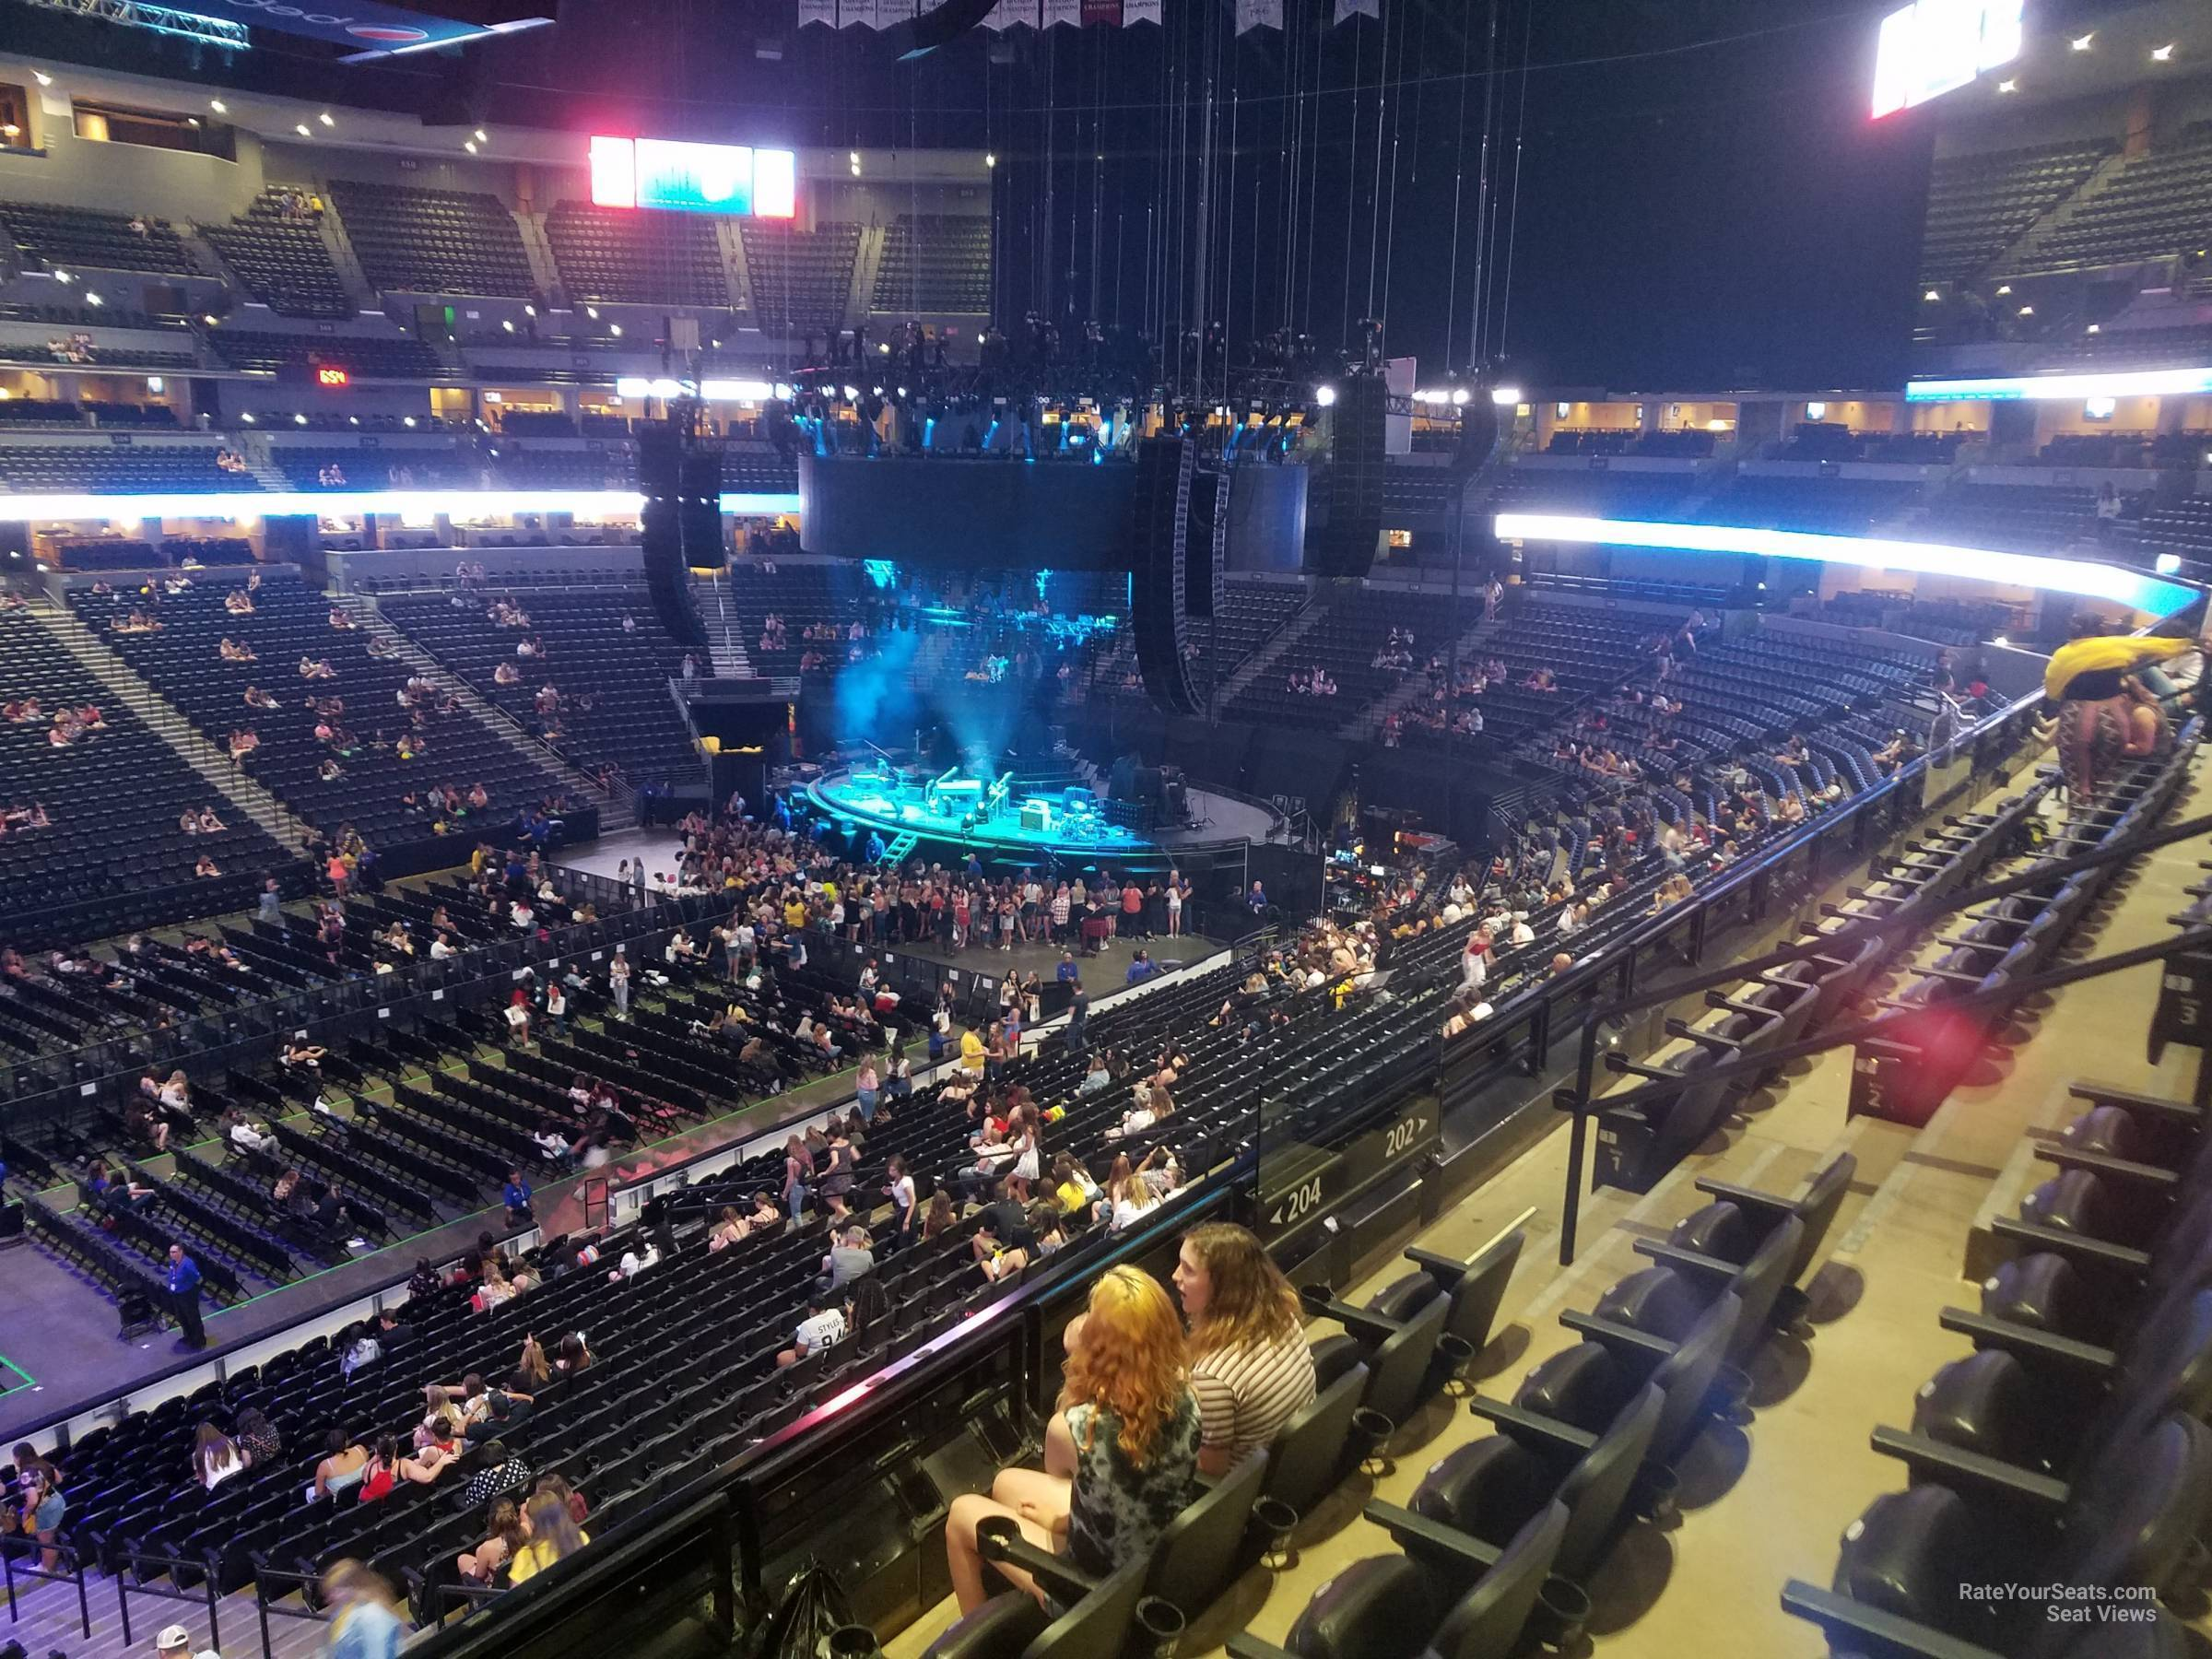 Pepsi Center: Pepsi Center Section 204 Concert Seating